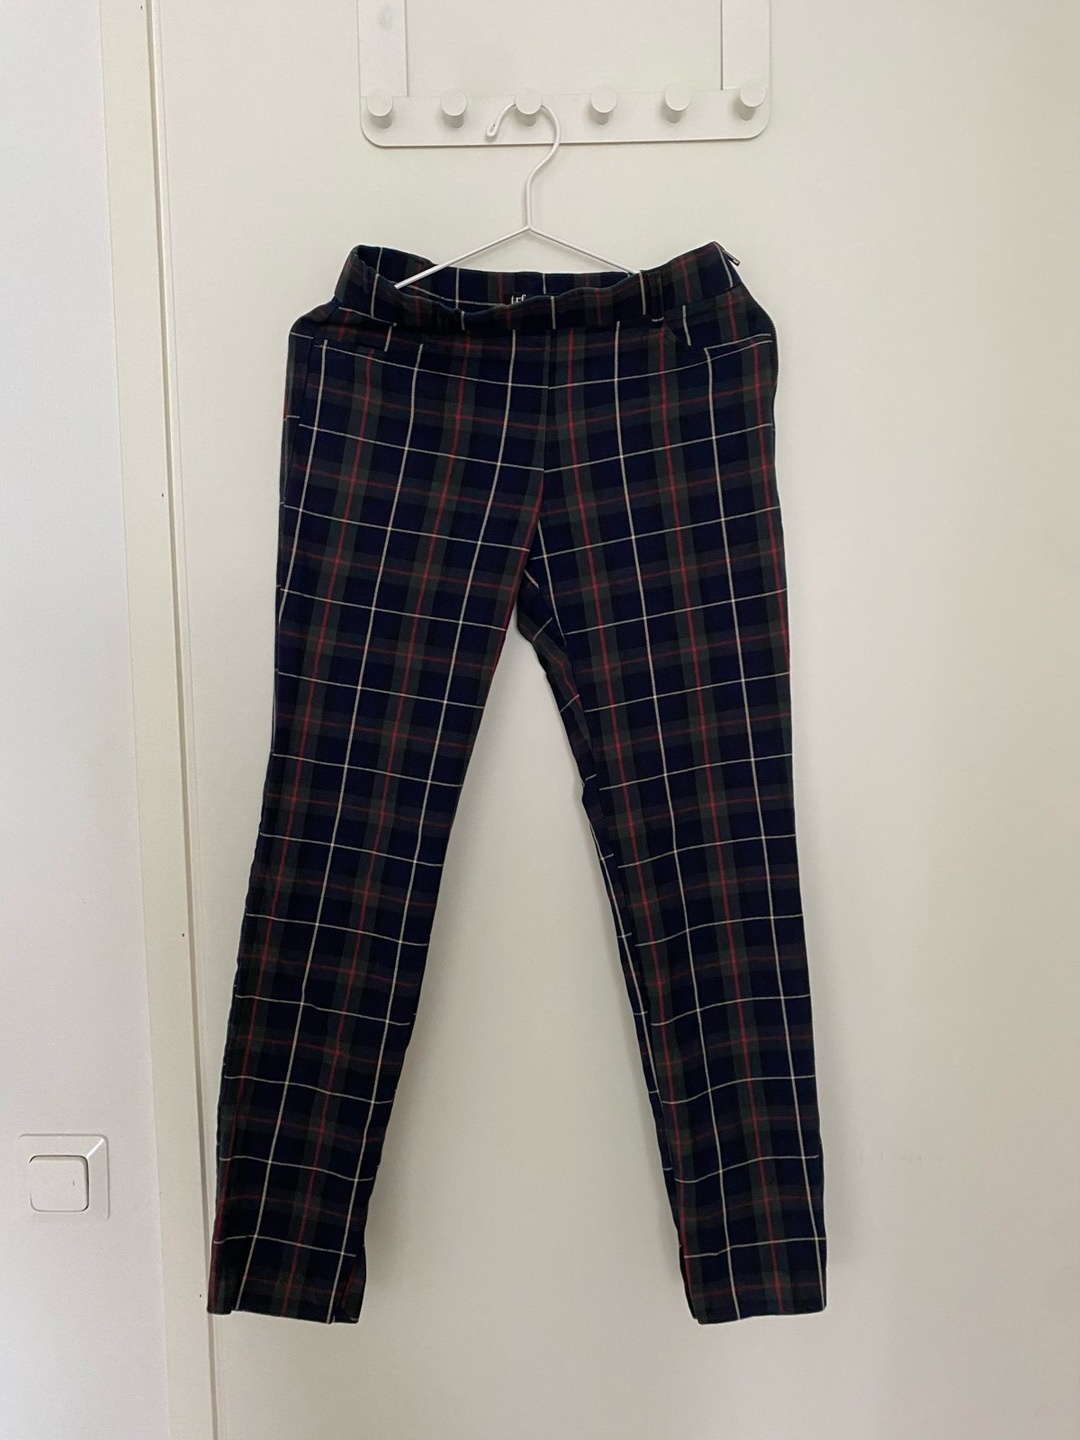 Women's trousers & jeans - ZARA photo 1